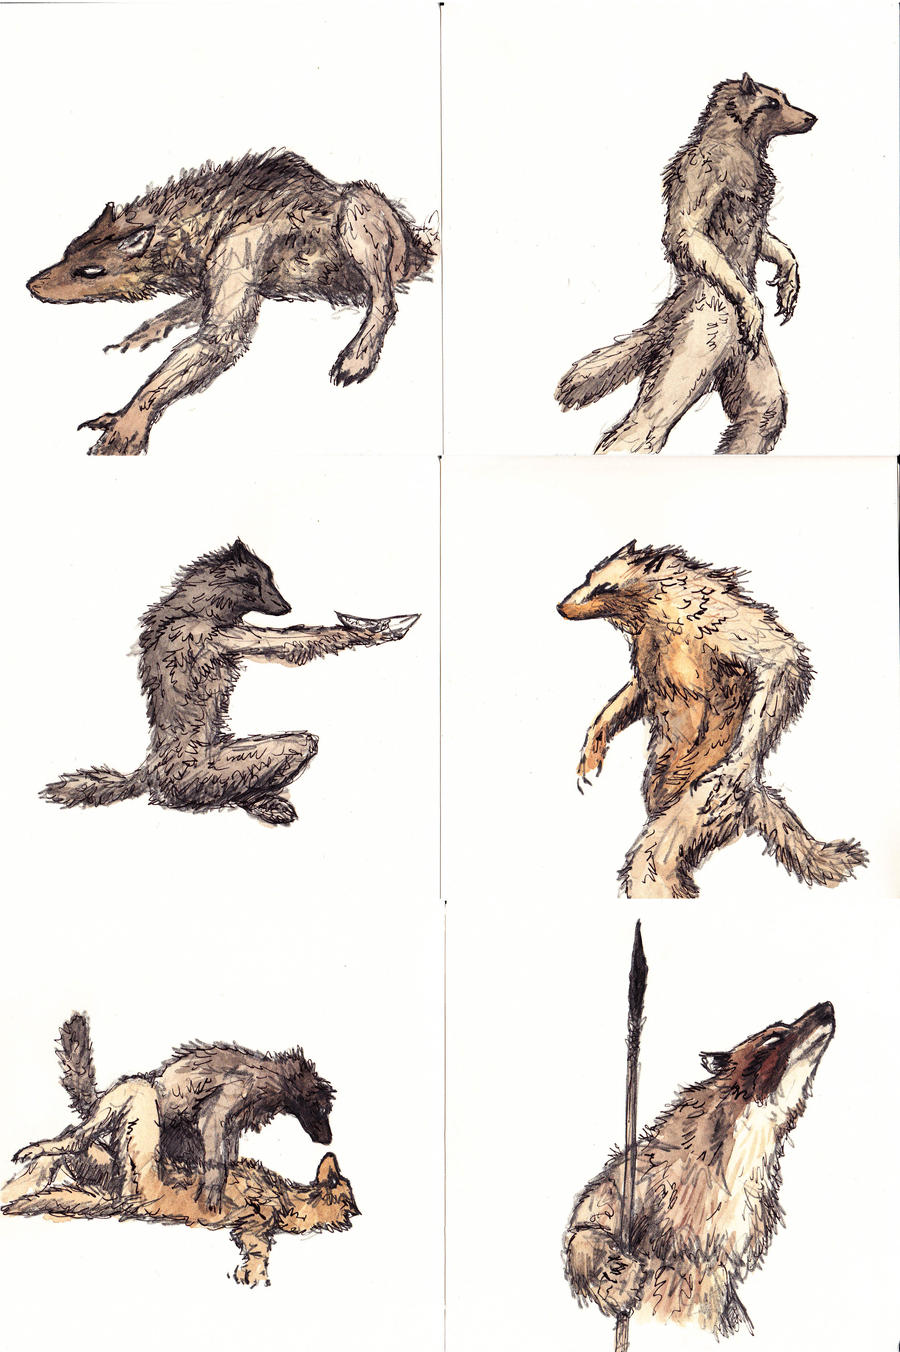 Werewolf sketches by Hyrotrioskjan